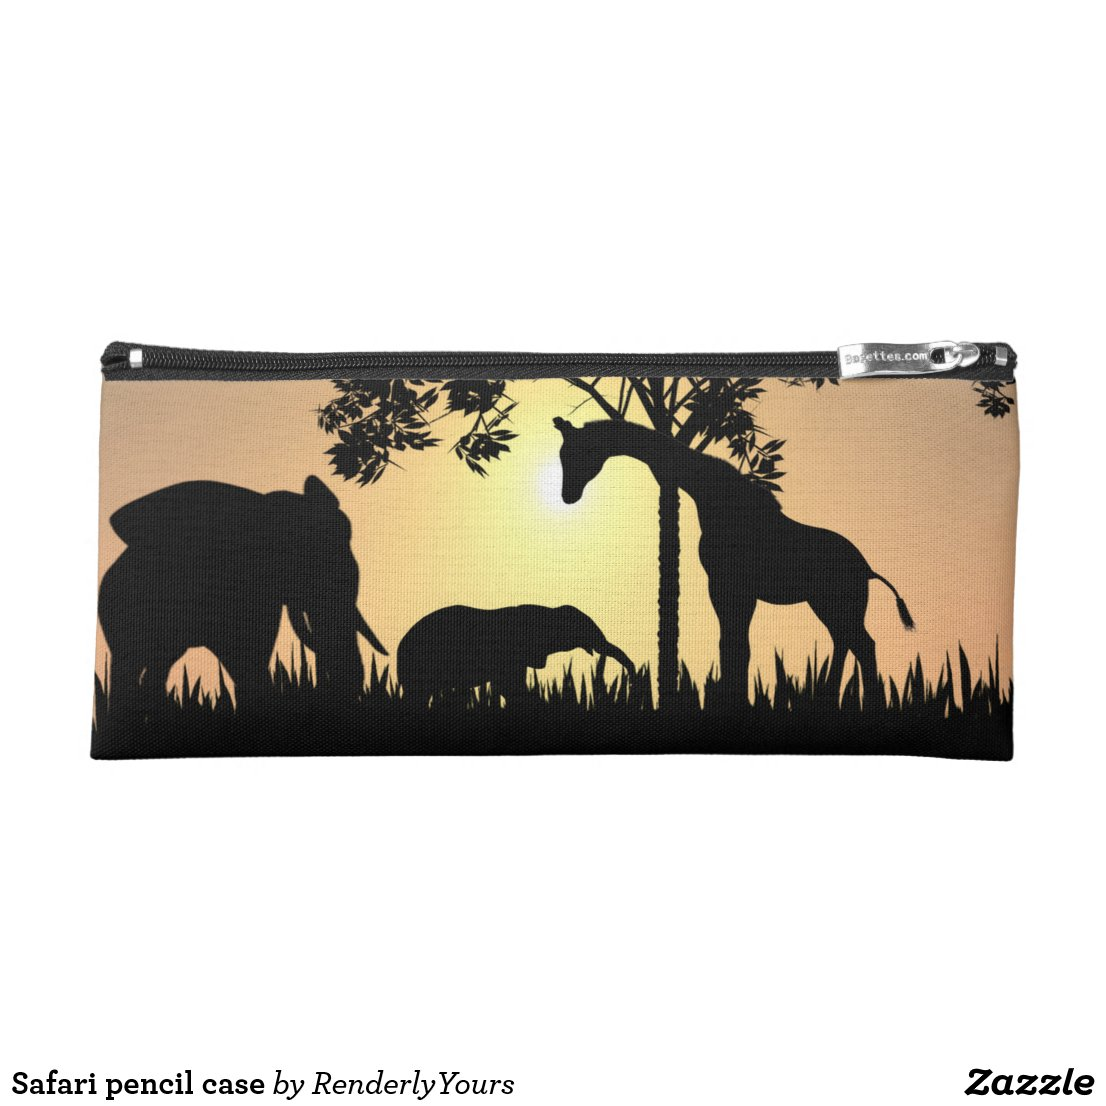 Safari pencil case